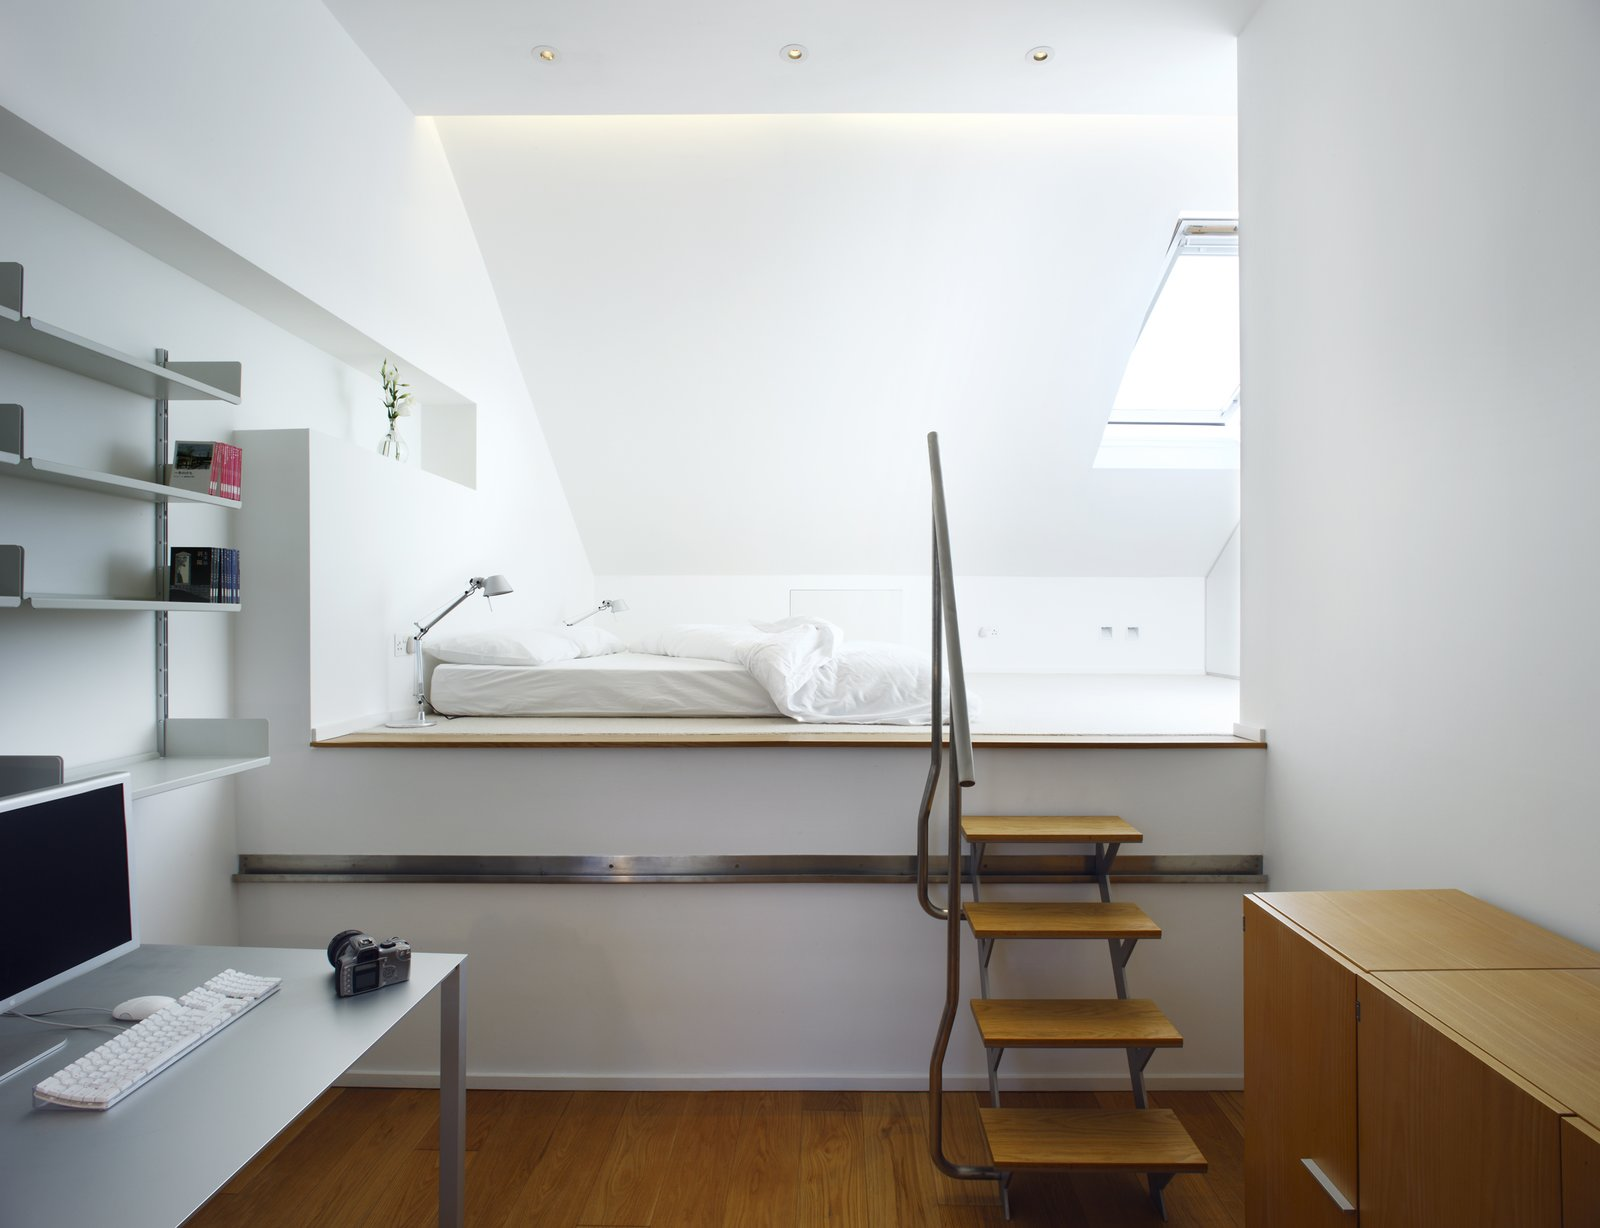 Bedroom, Bed, and Shelves  Elm Grove by Thompson + Baroni